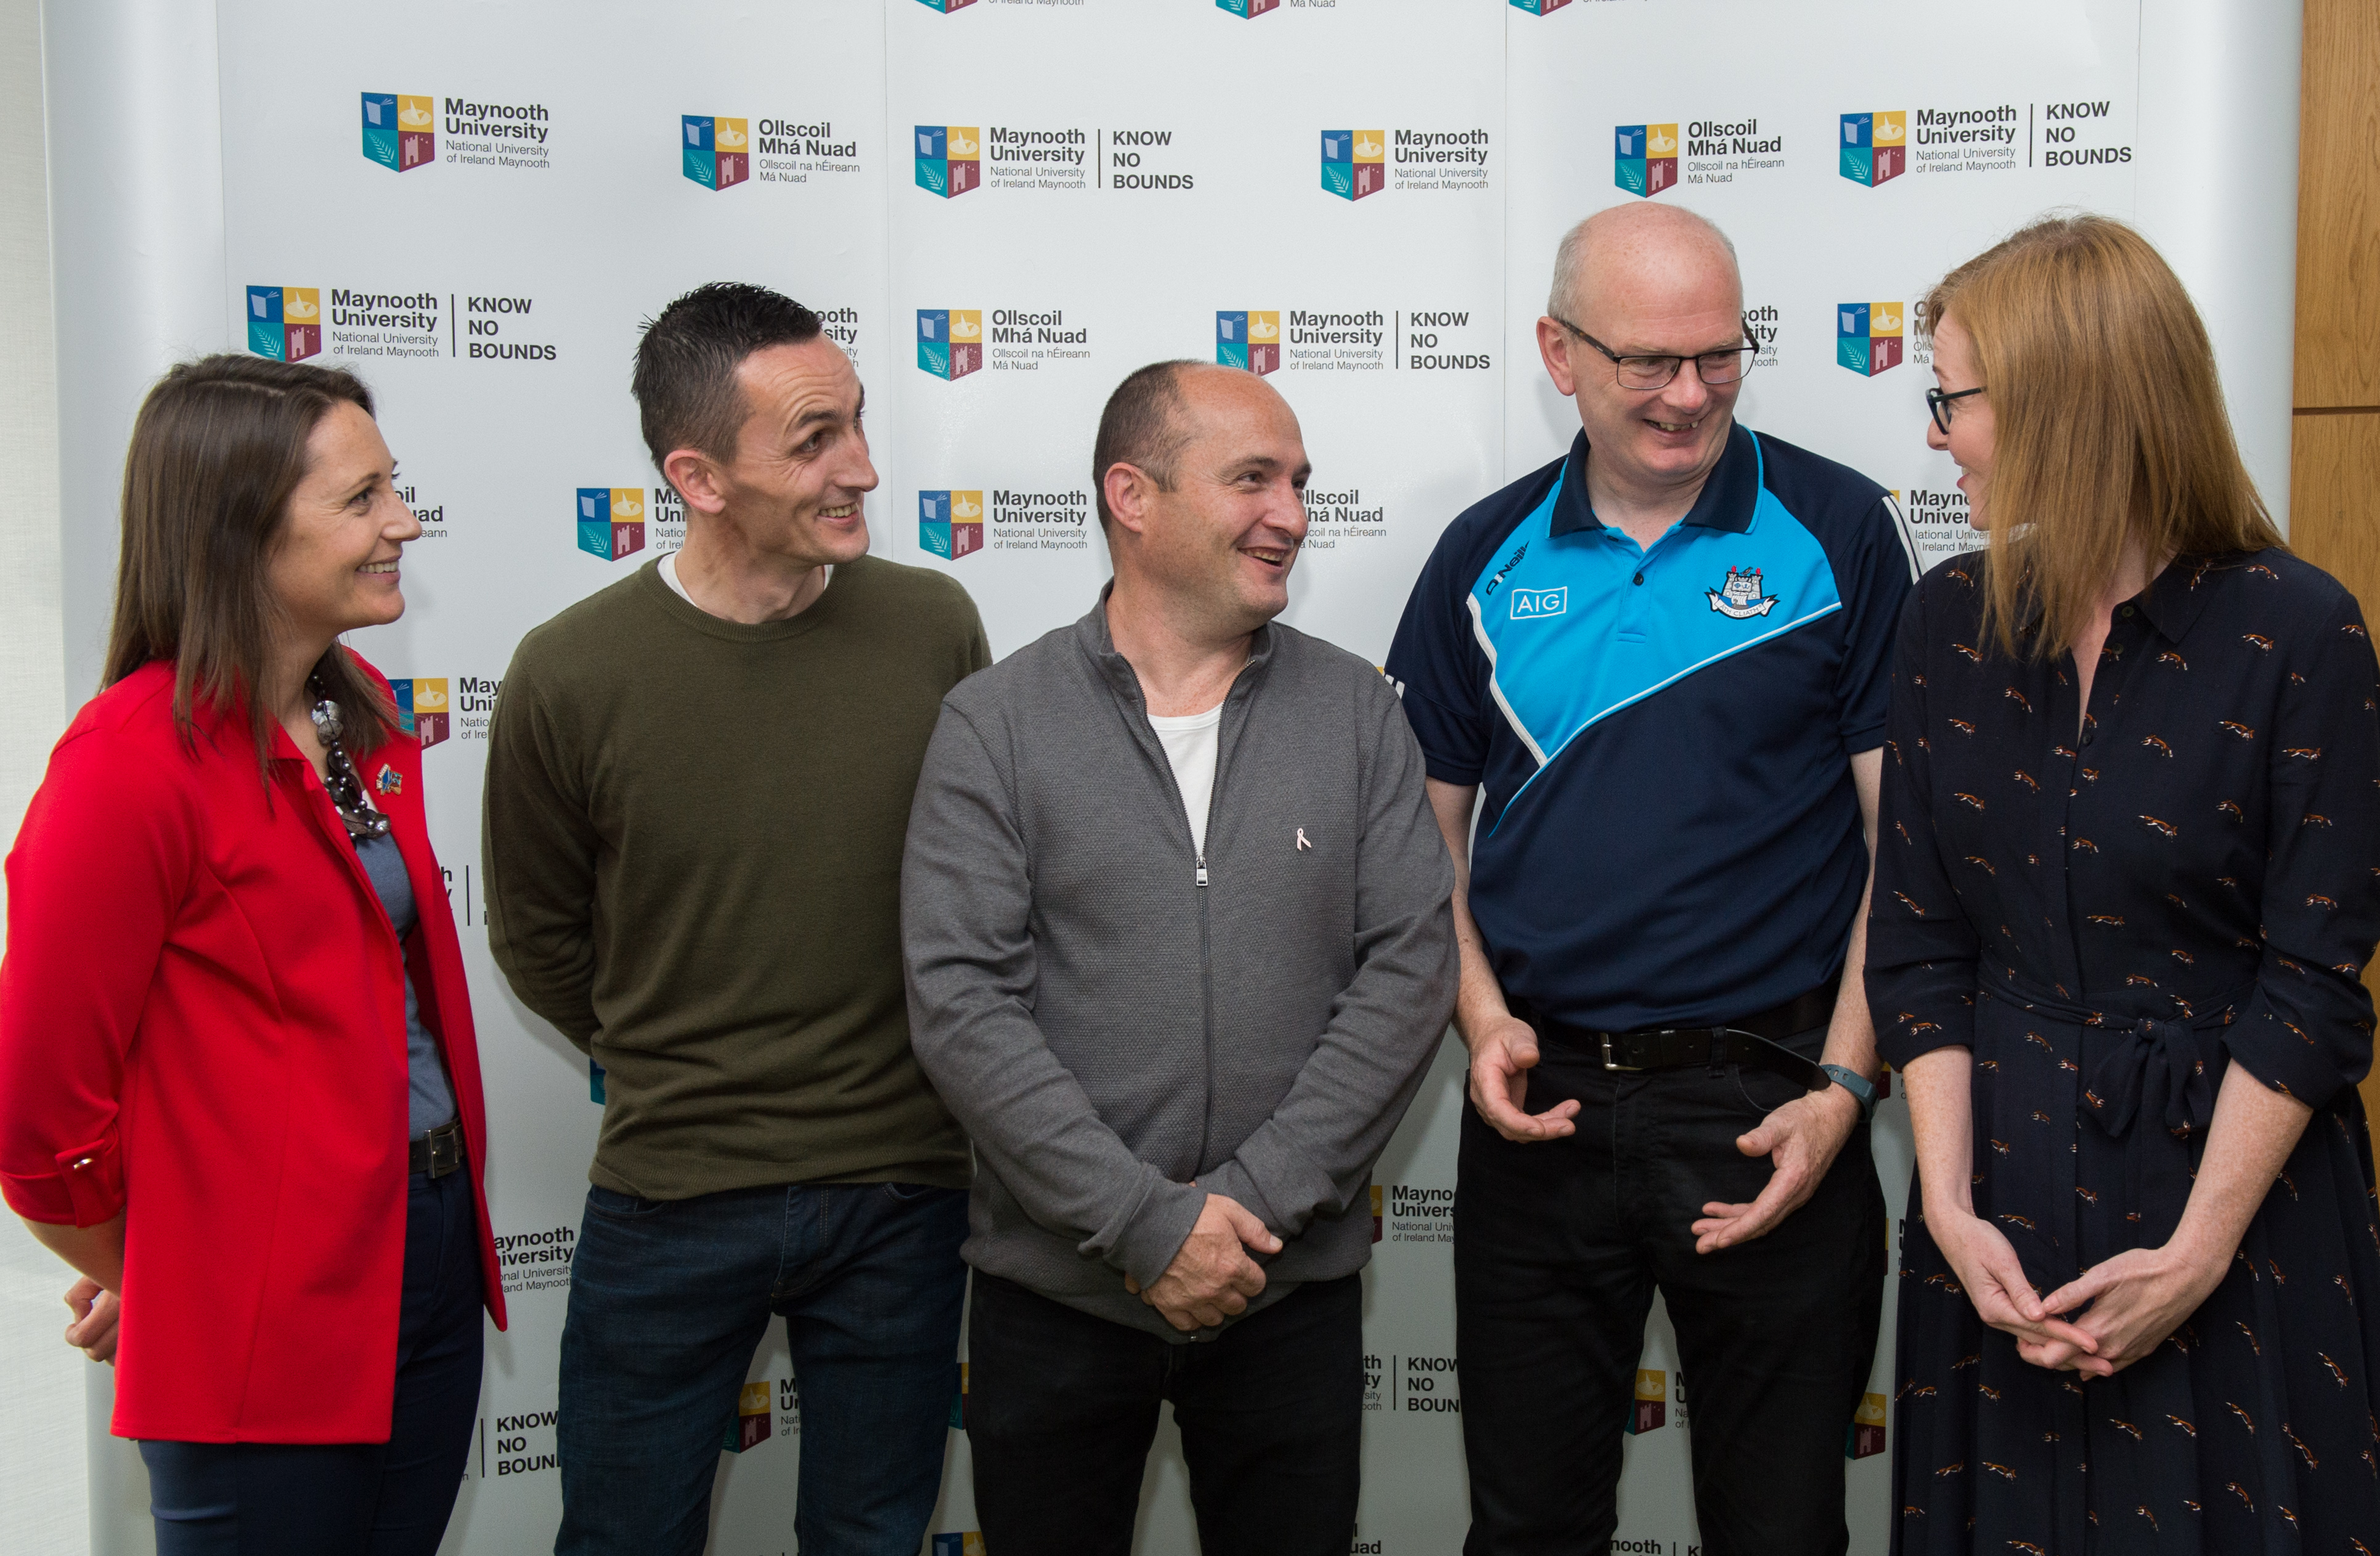 Maynooth Vice President for Equality and Diversity, Dr. Gemma Irvine, Post-graduate student, Shean Delaney, Niall Walsh, Head Teacher, Pathways Centre, Chief Prison Officer Mark Byrne, and Maynooth University Access Programme Manager, Grace Edge.